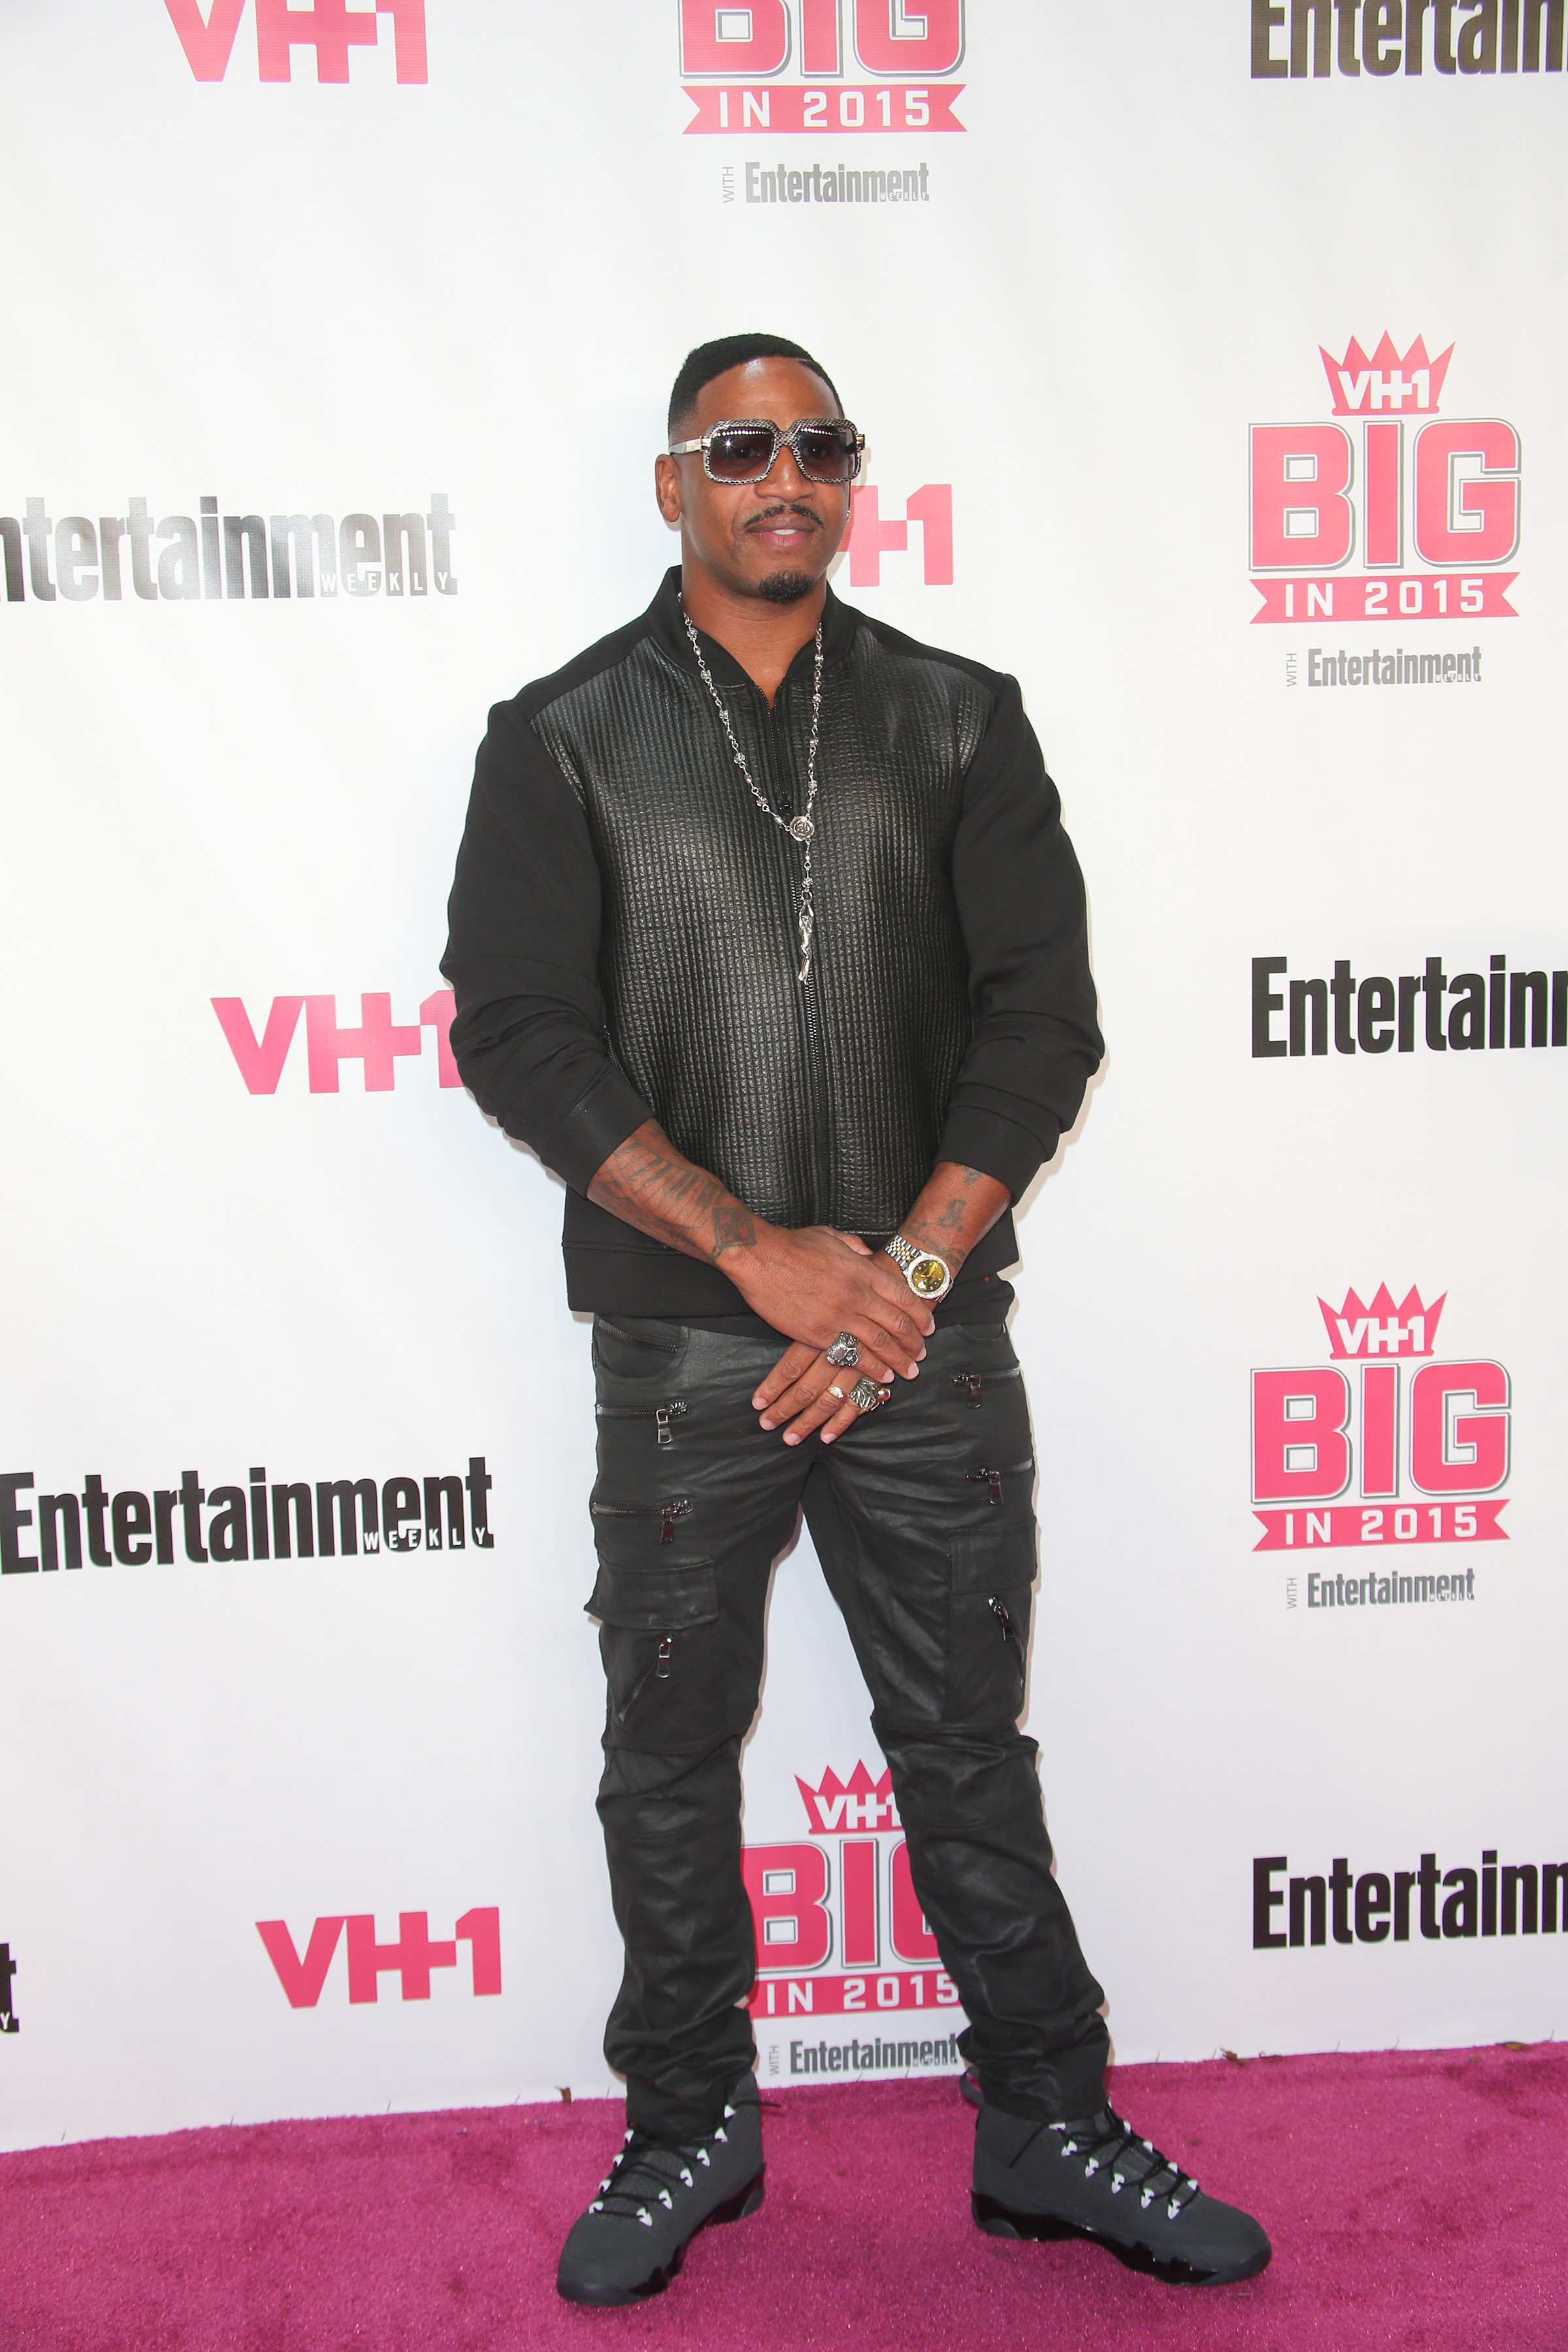 11/15/2015 - Stevie J - VH1 Big in 2015 with Entertainment Weekly Awards - Arrivals - Pacific Design Center - West Hollywood, CA, USA - Keywords: Vertical, Portrait, Photography, Arts Culture and Entertainment, Attending, EW, People, Person, Celebrities, Celebrity, Annual Red Carpet Event, Los Angeles, California Orientation: Portrait Face Count: 1 - False - Photo Credit: PRPhotos.com - Contact (1-866-551-7827) - Portrait Face Count: 1